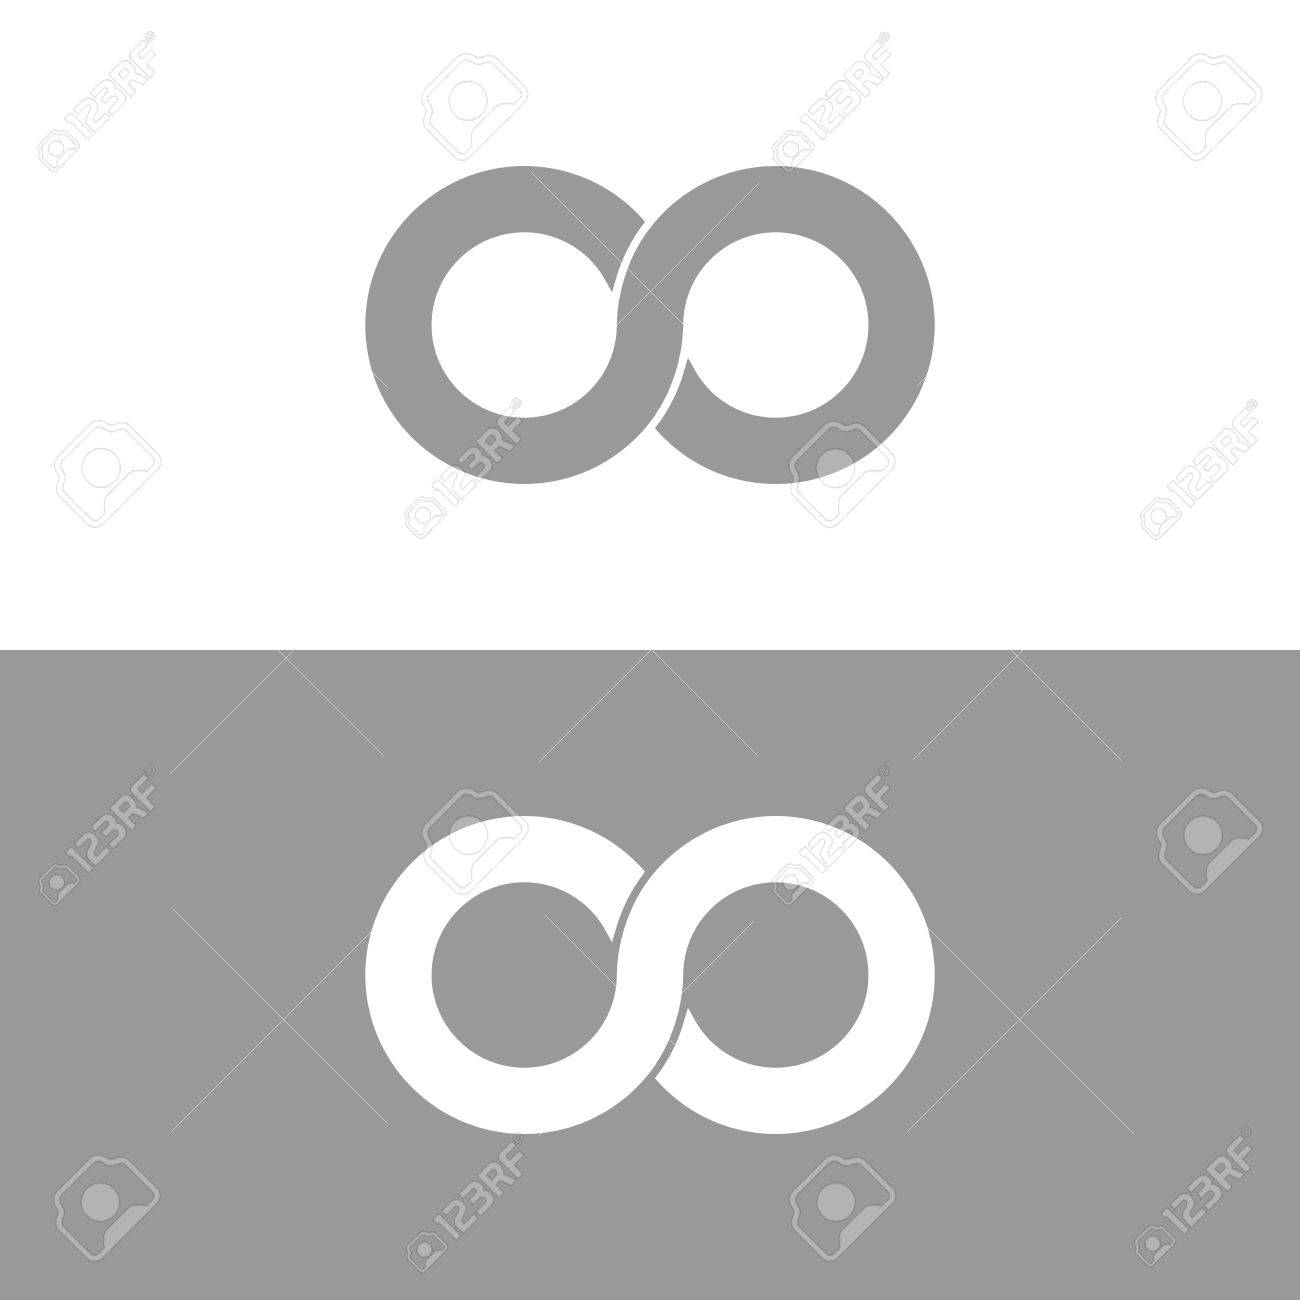 Infinity Symbol In Grey And White Endless Infinite Royalty Free